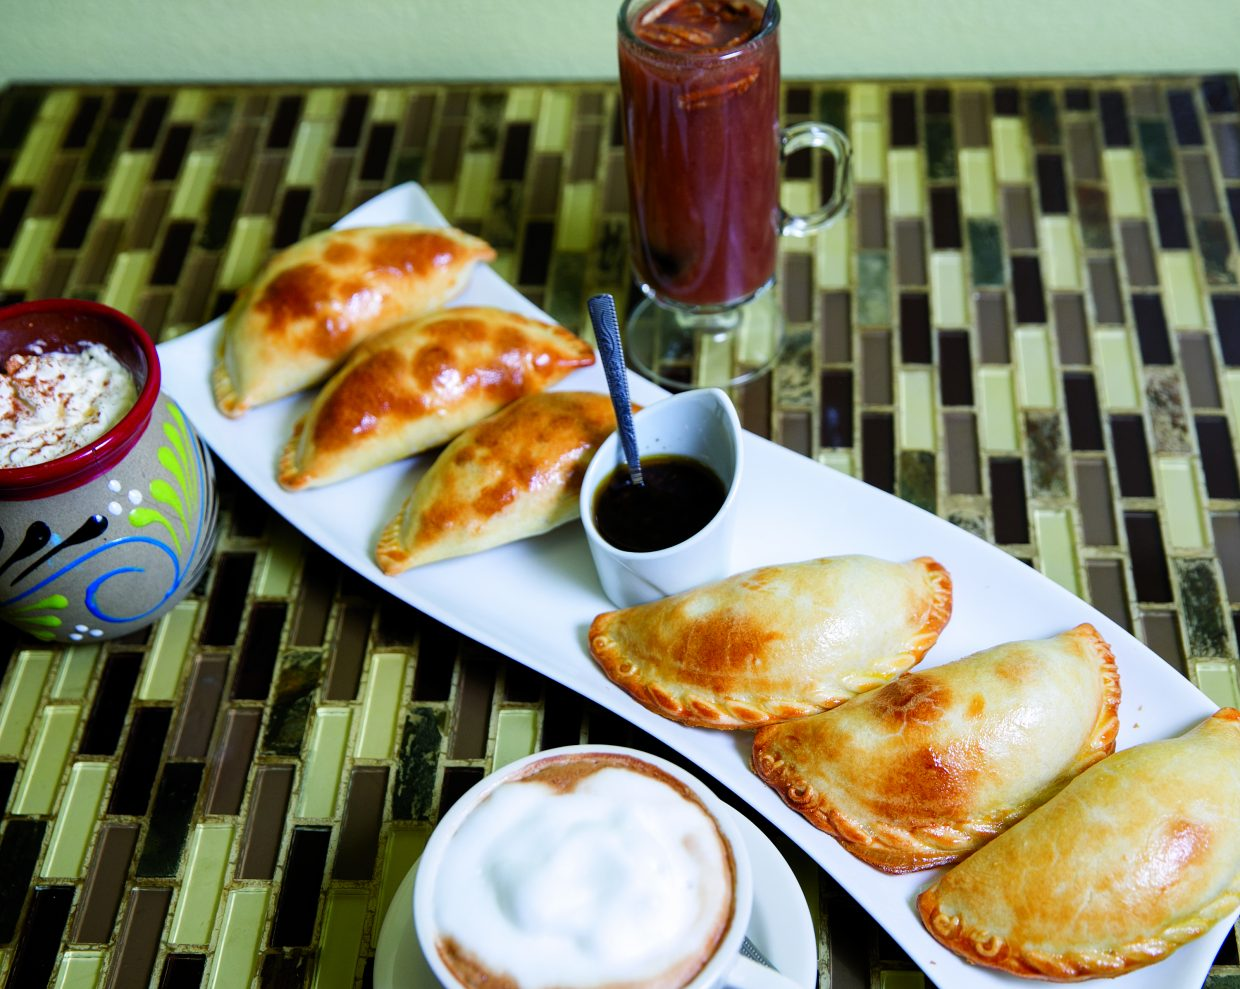 We make empanadas from scratch, including chicken, meat or vegetables.